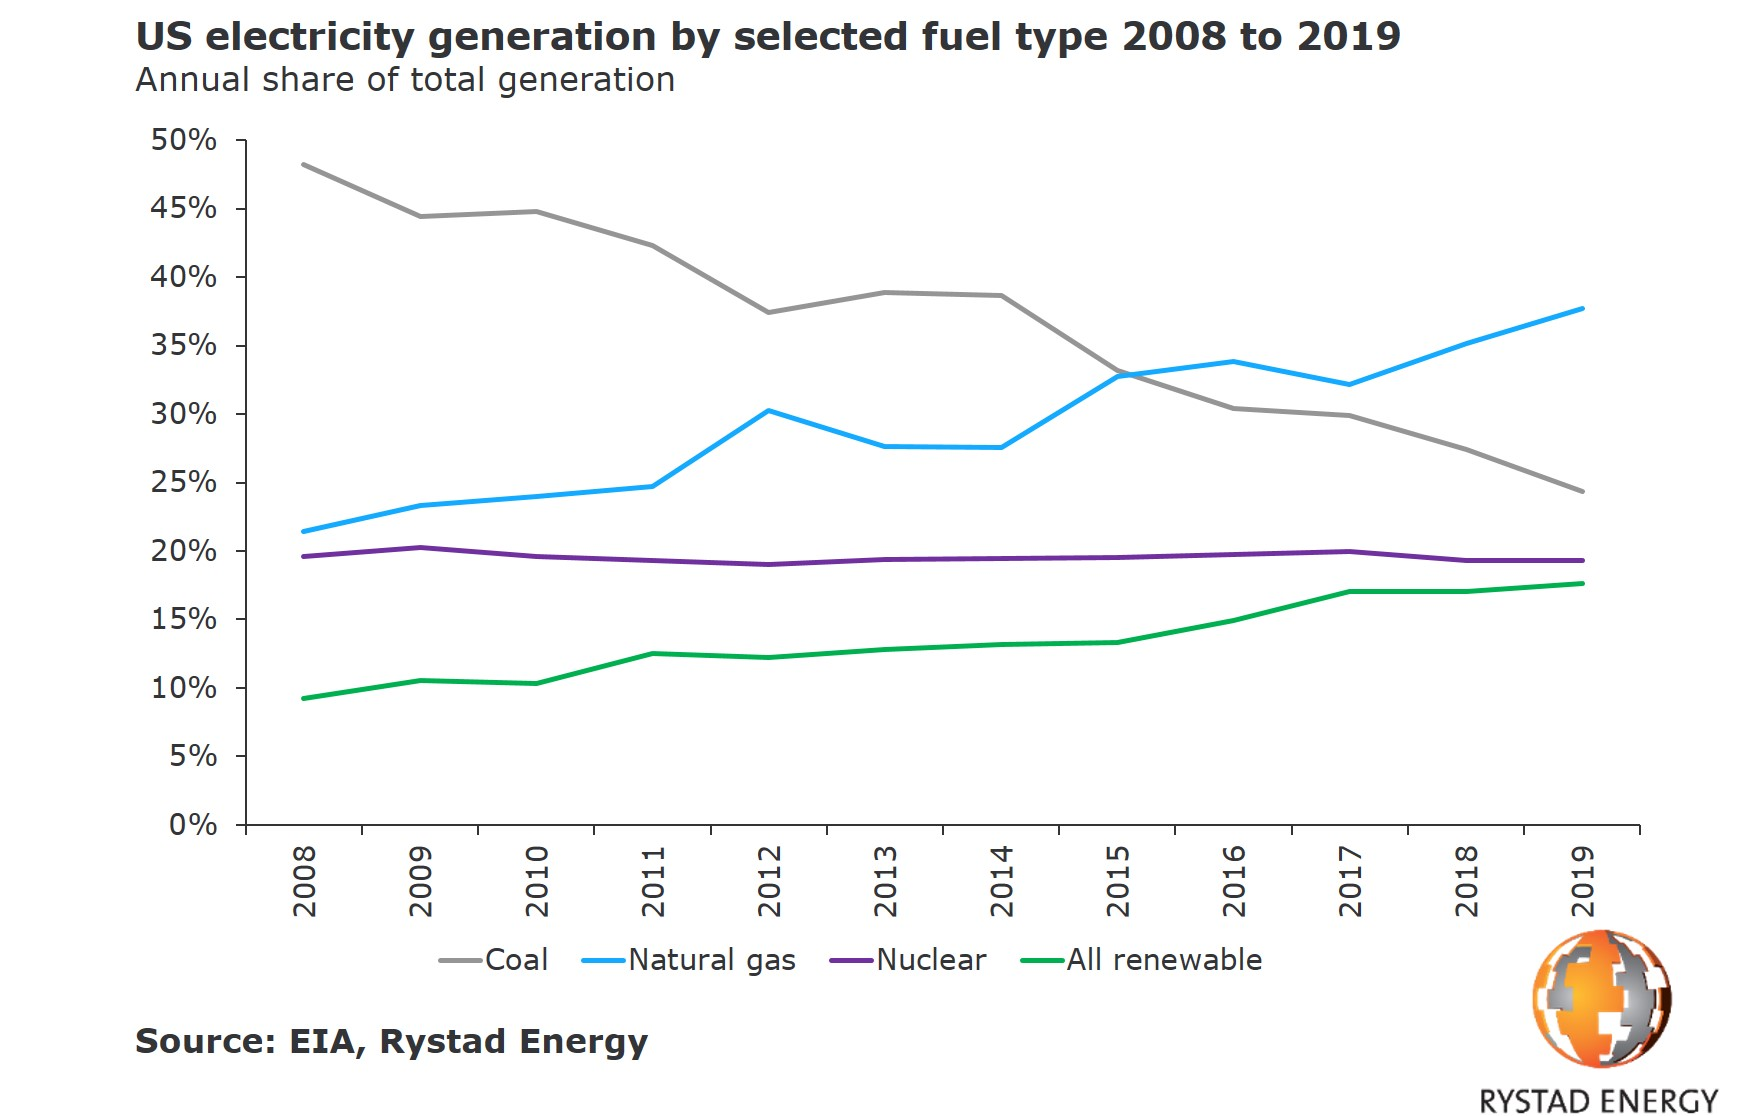 20190805_PR Charts US electricity generation by selected fuel type 2008 to 2019.jpg